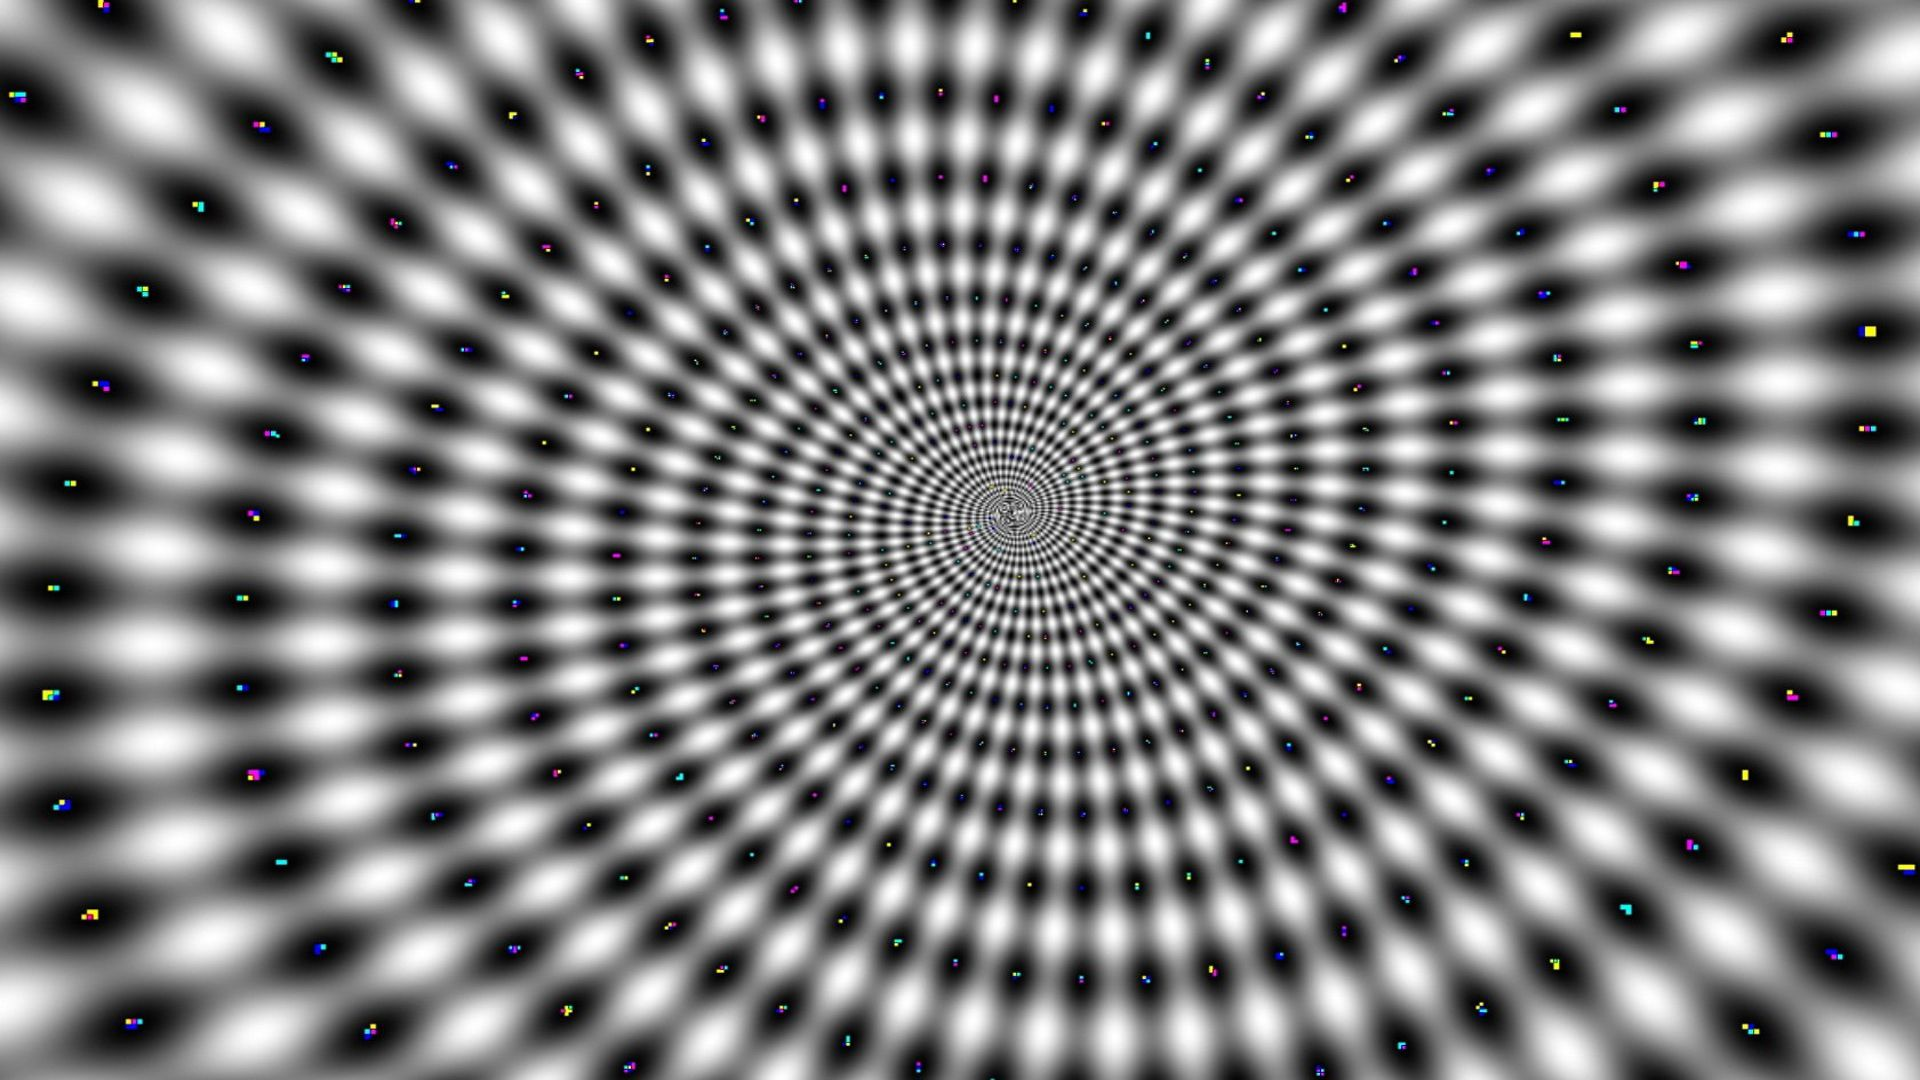 It hurts my eyes optical illusion swirl in various colors